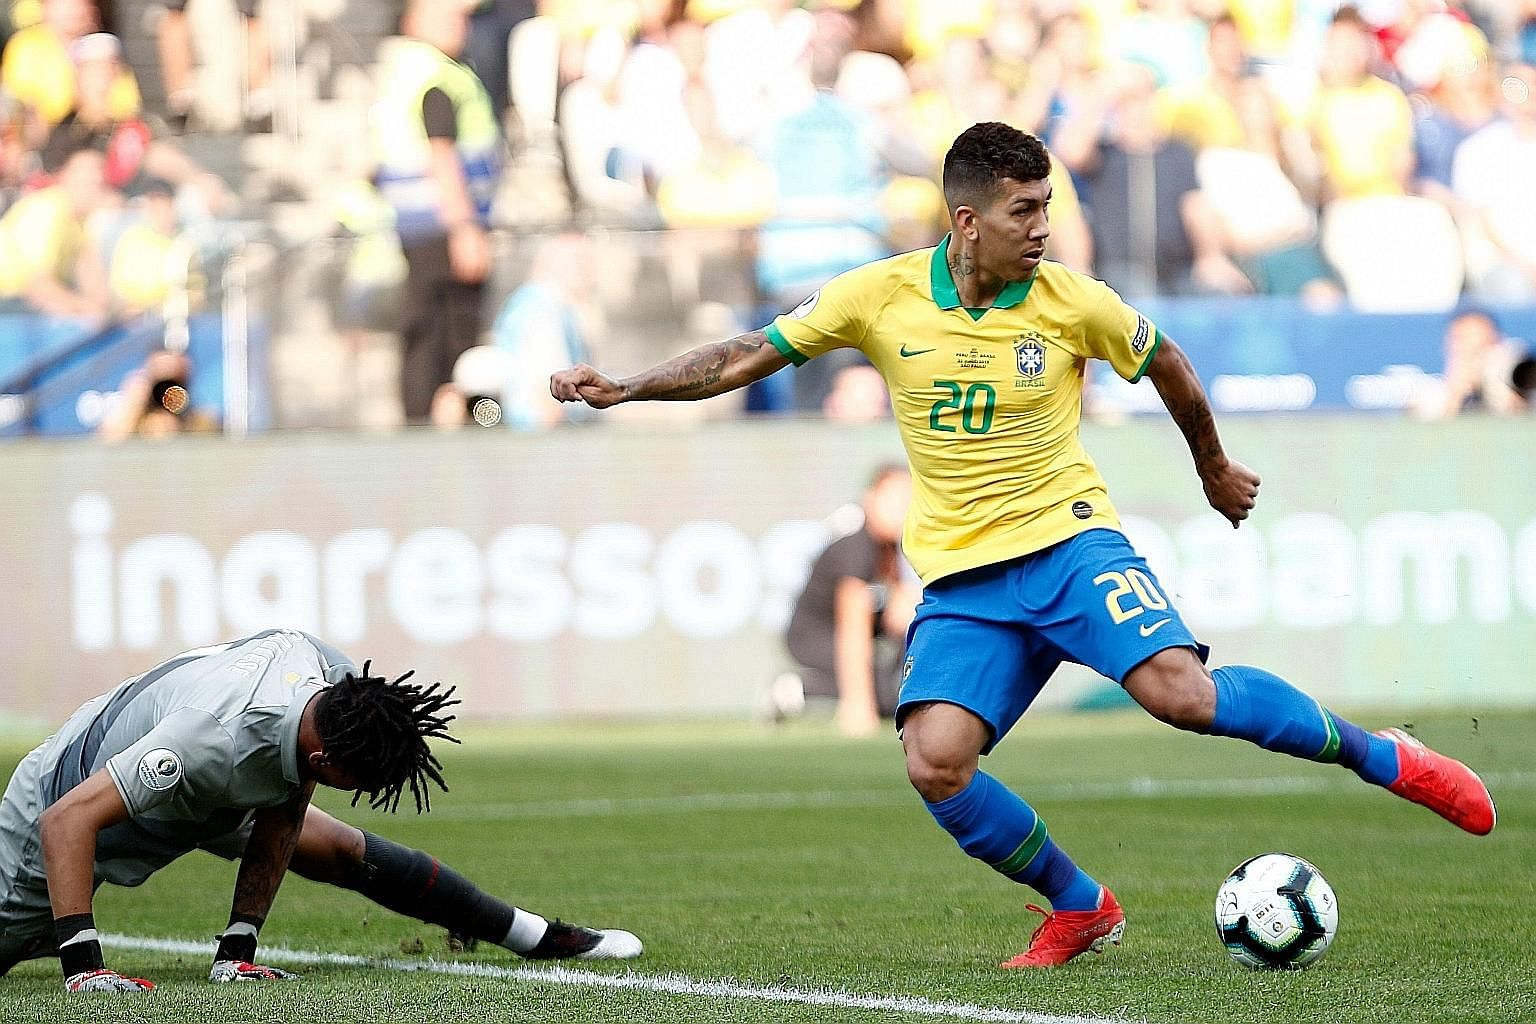 Roberto Firmino's no-look strike which left Peru goalkeeper Pedro Gallese stranded was the pick of the bunch in Brazil's 5-0 Copa America victory in Sao Paulo on Saturday.